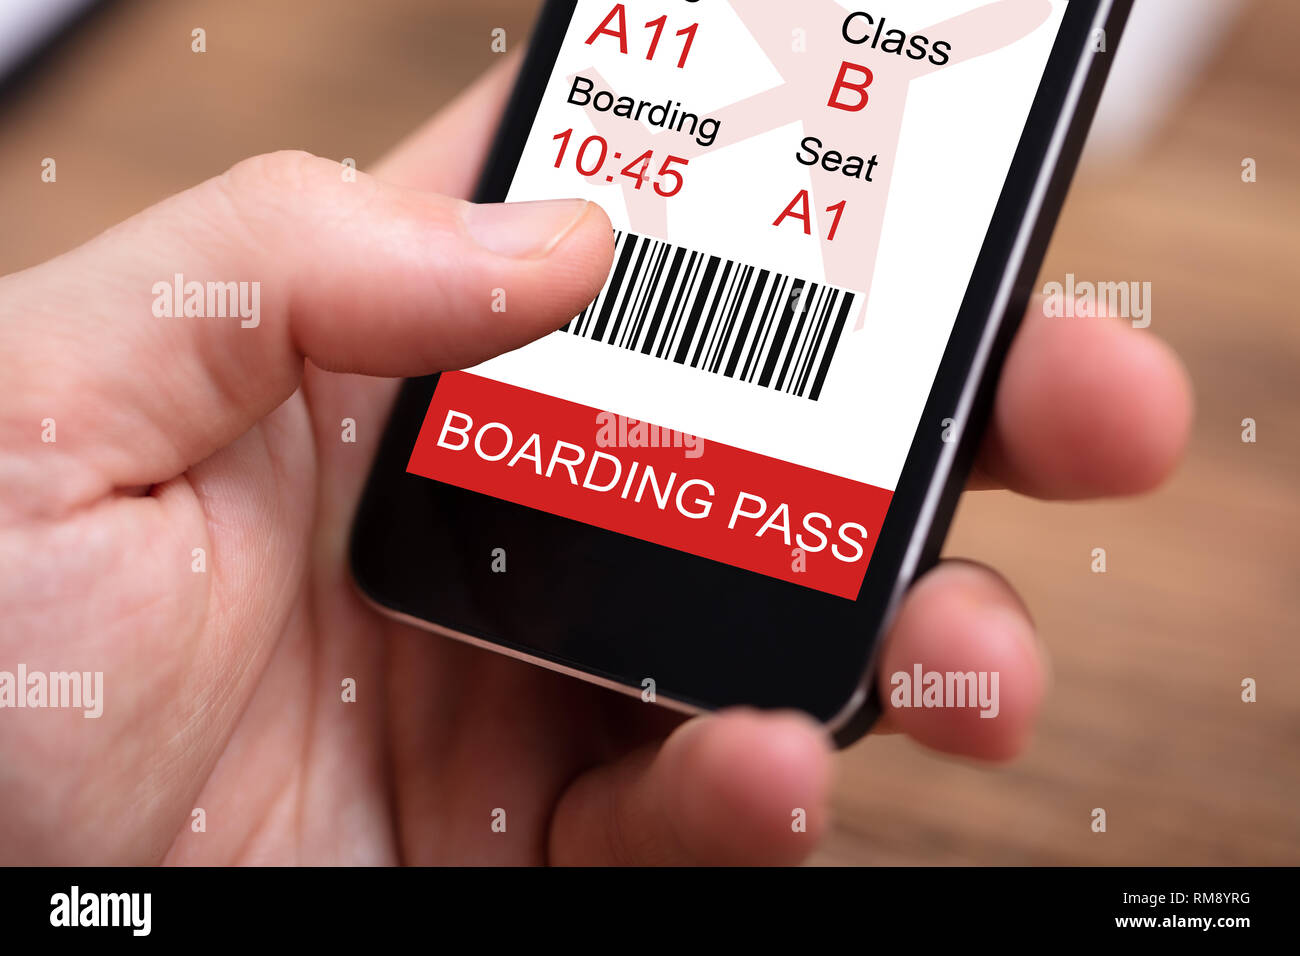 a80da610abe Person Holding Mobilephone With Boarding Pass On Screen - Stock Image